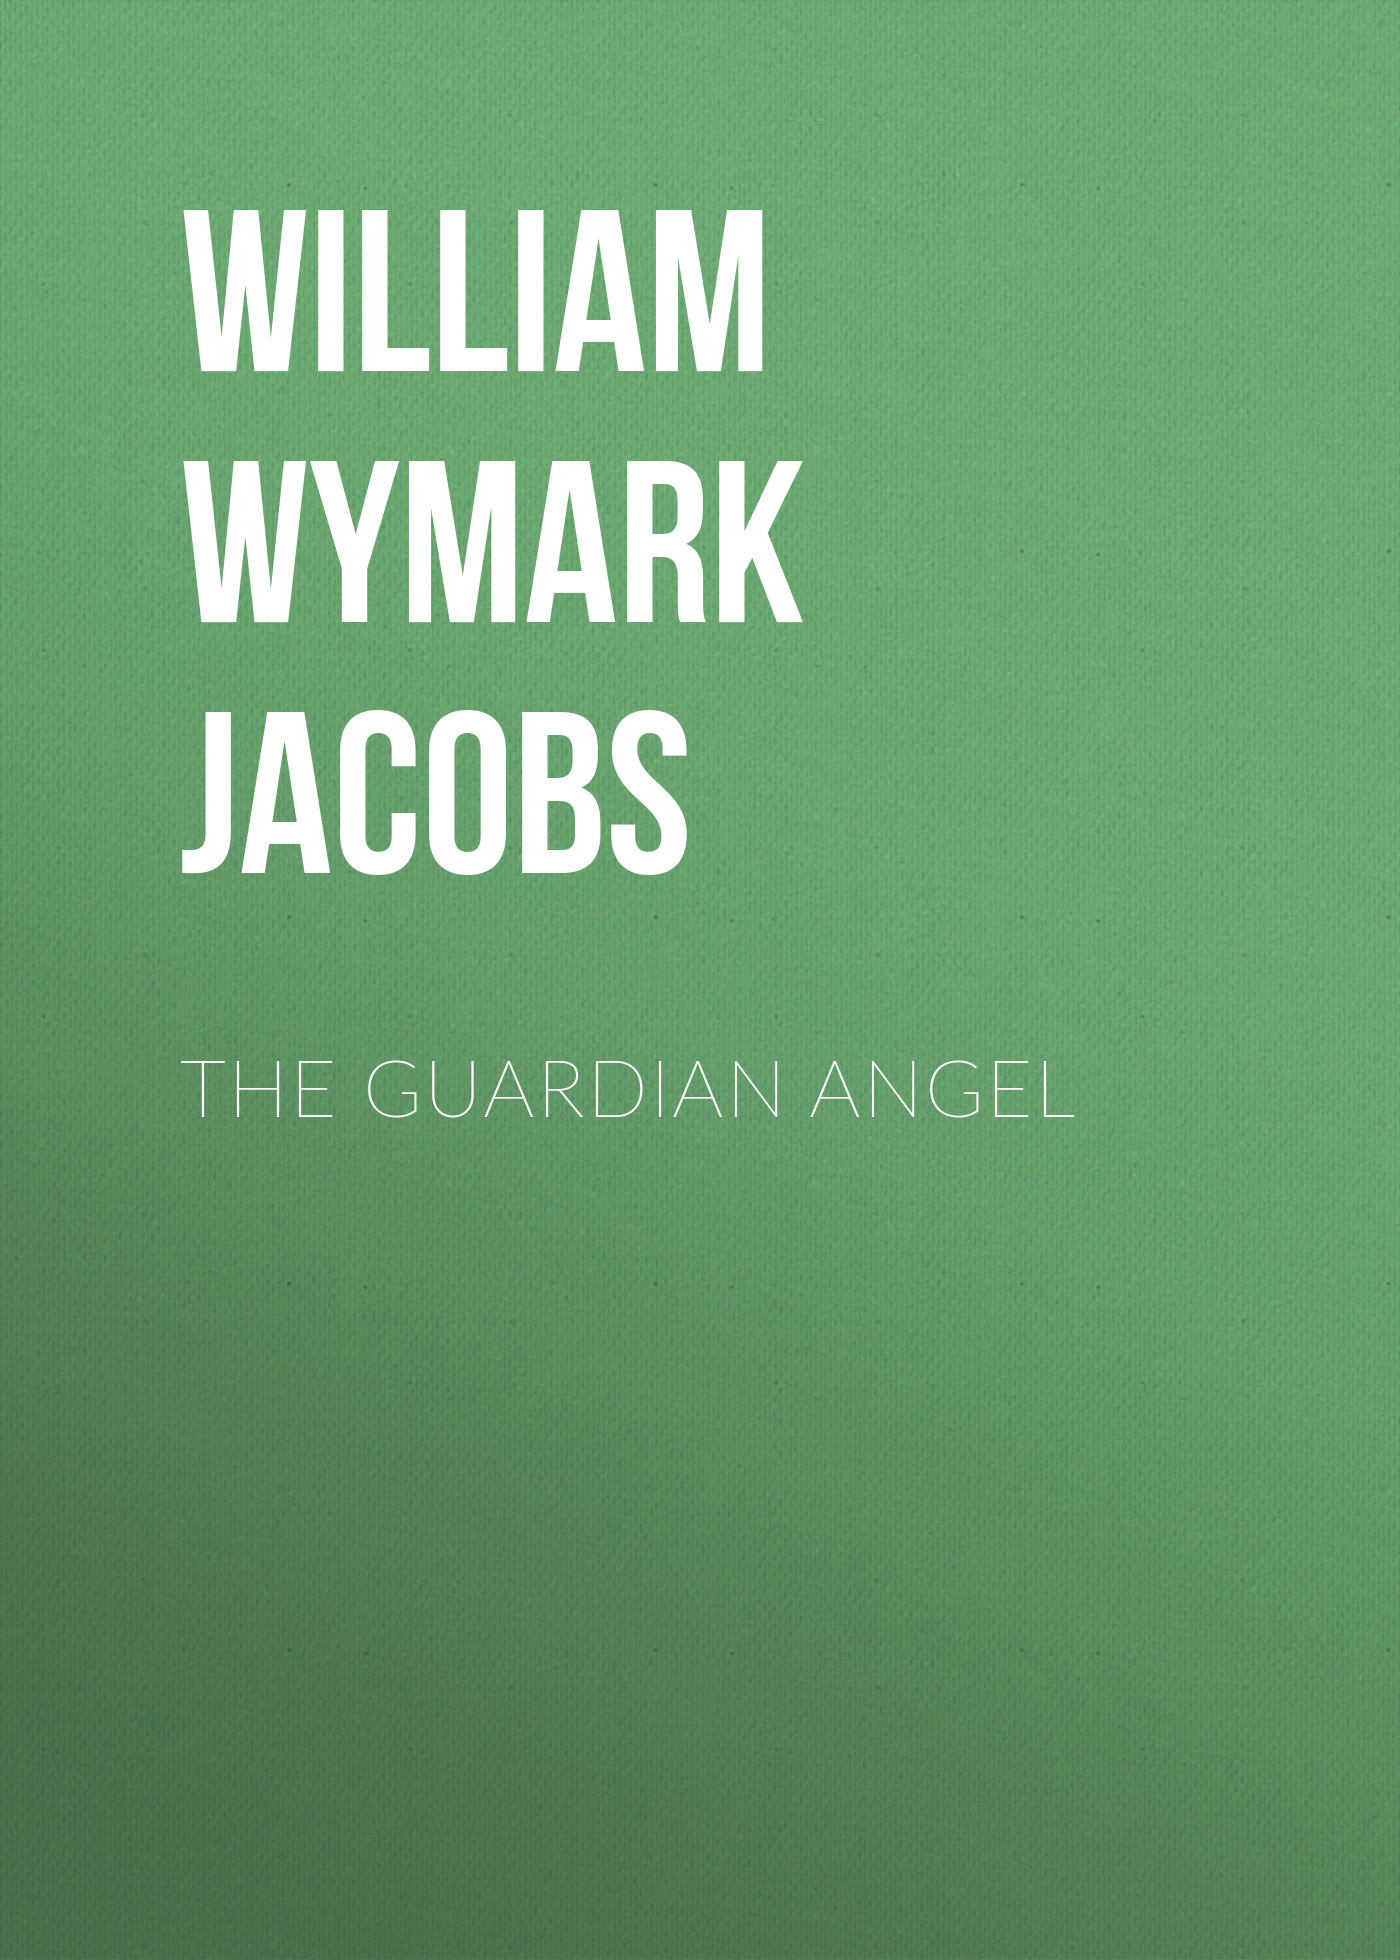 William Wymark Jacobs The Guardian Angel authentic original vintage style толстовка